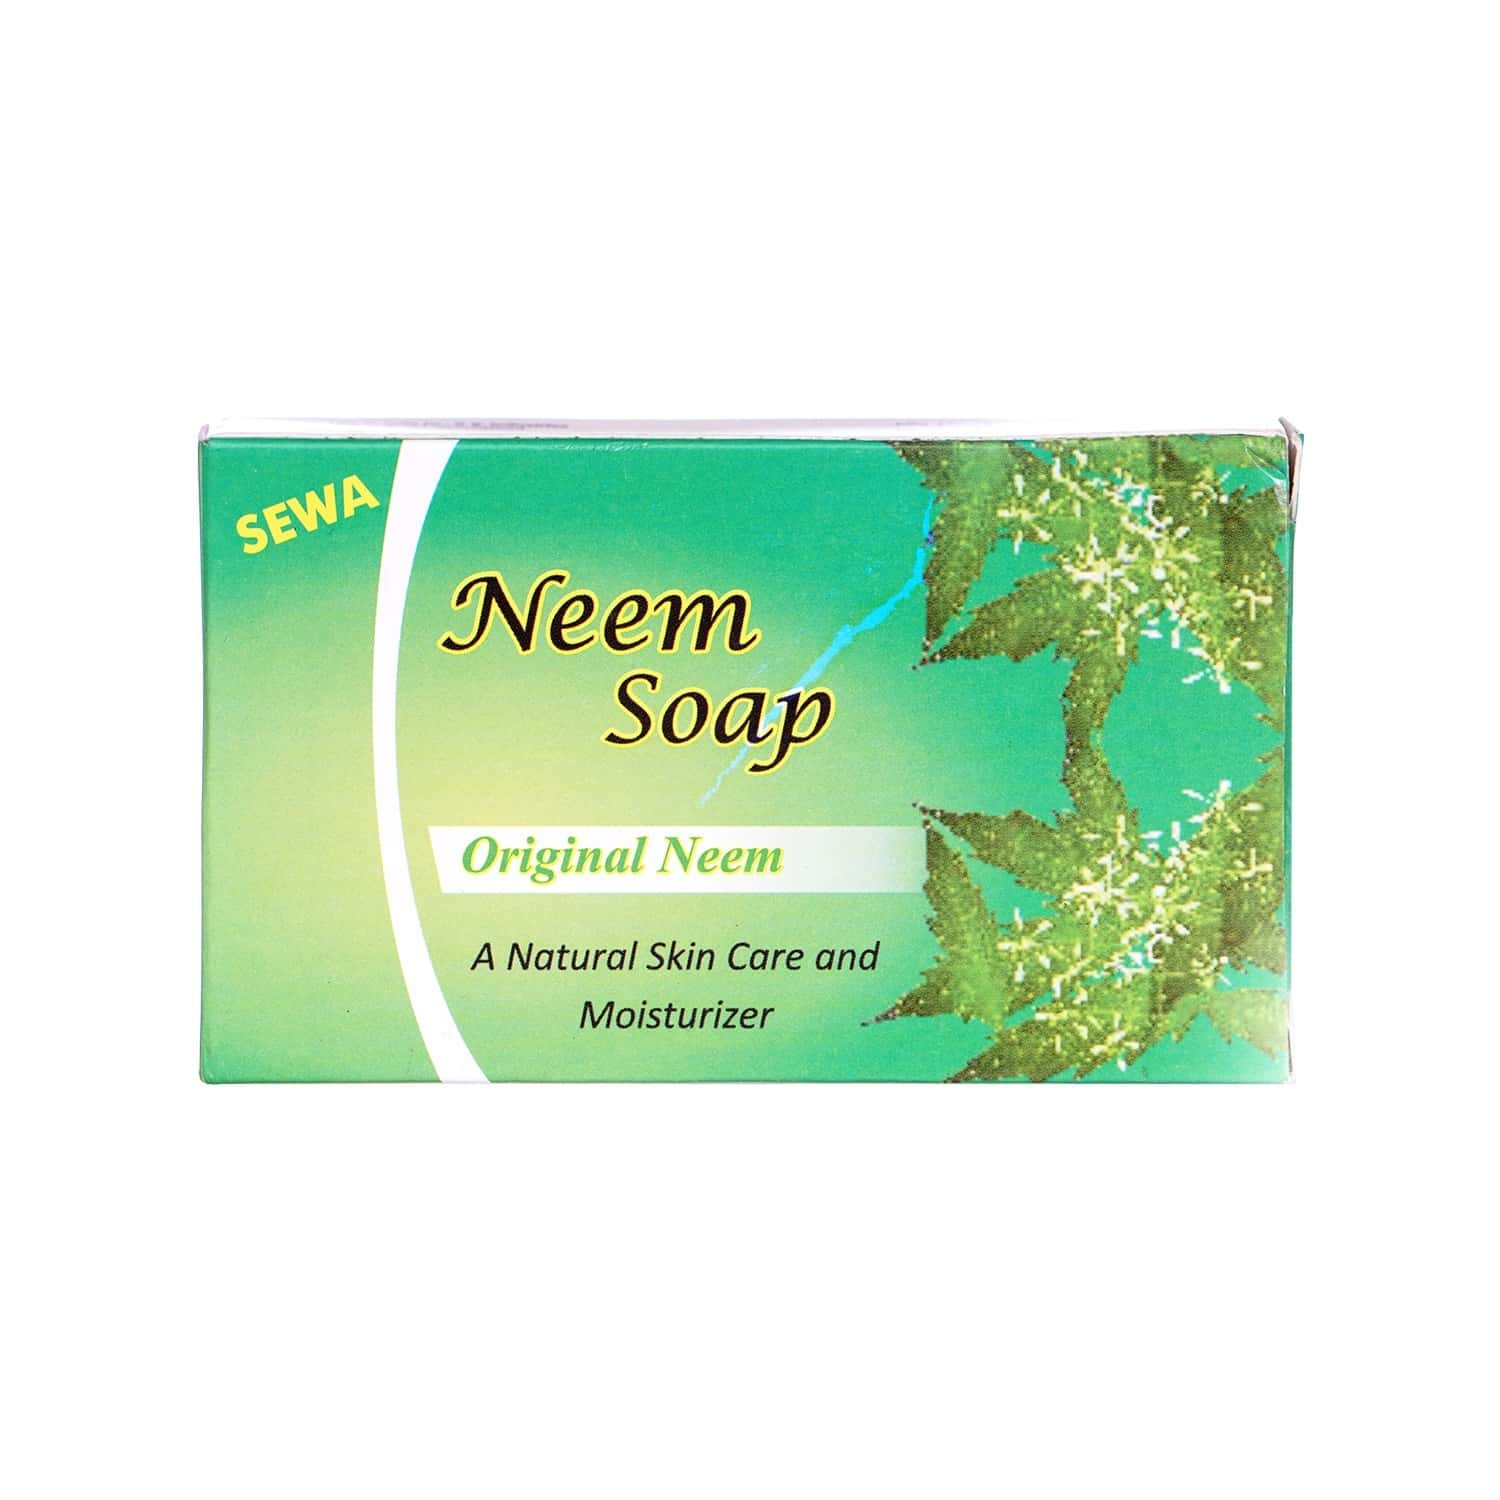 Sewa Neem Soap Box Of 100 G